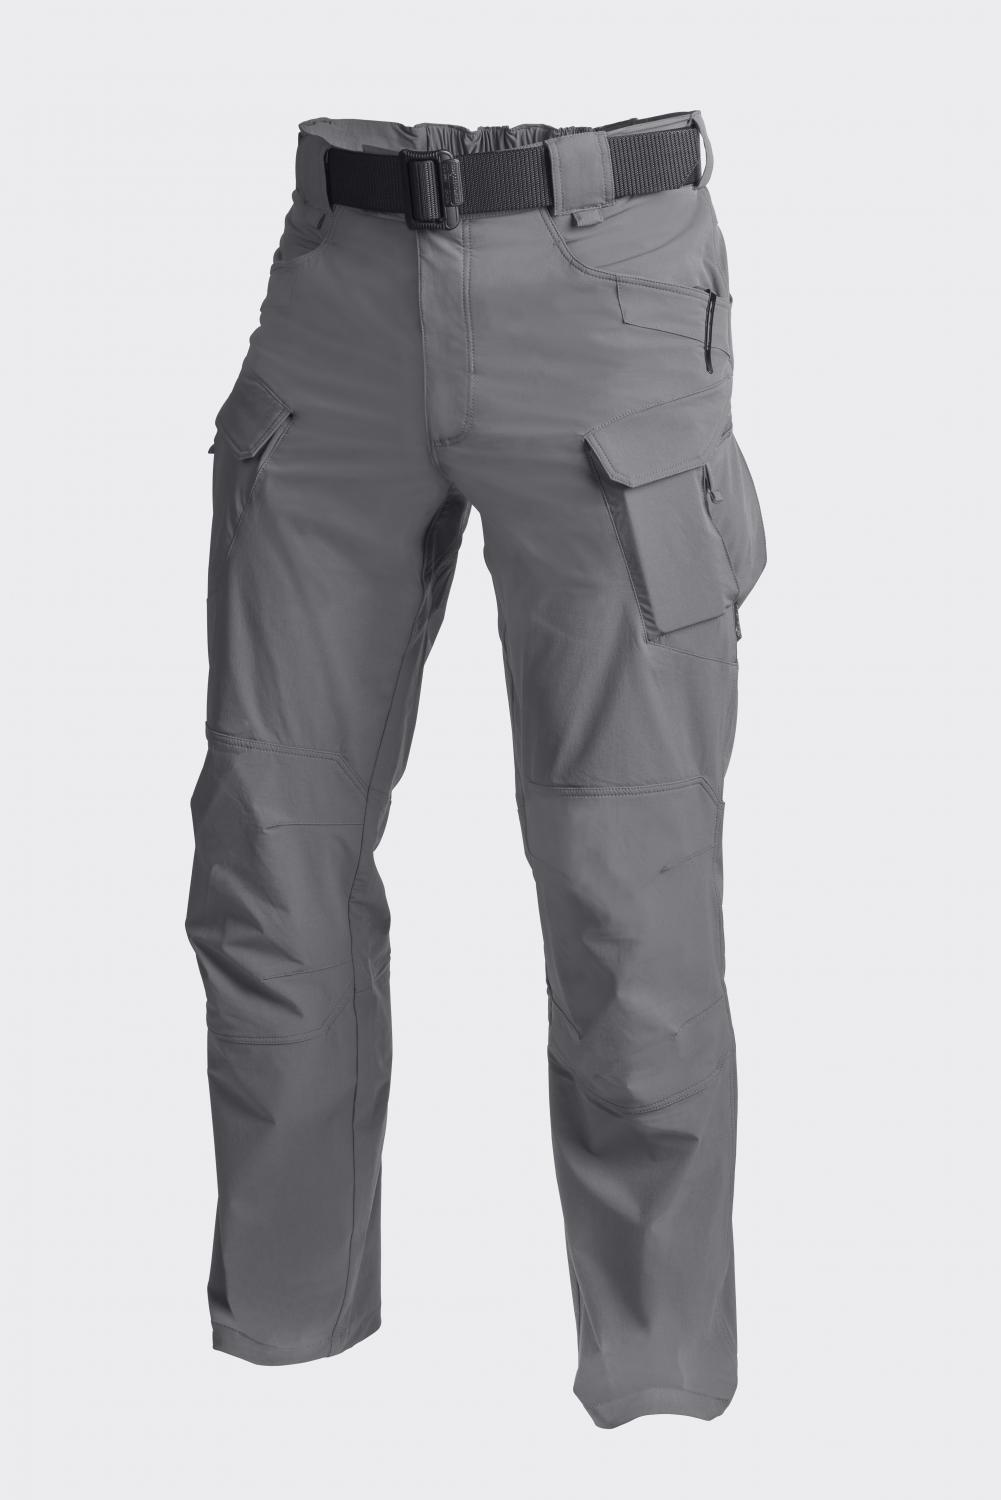 OUTDOOR TACTICAL PANTS - Nylon Shadow Grey